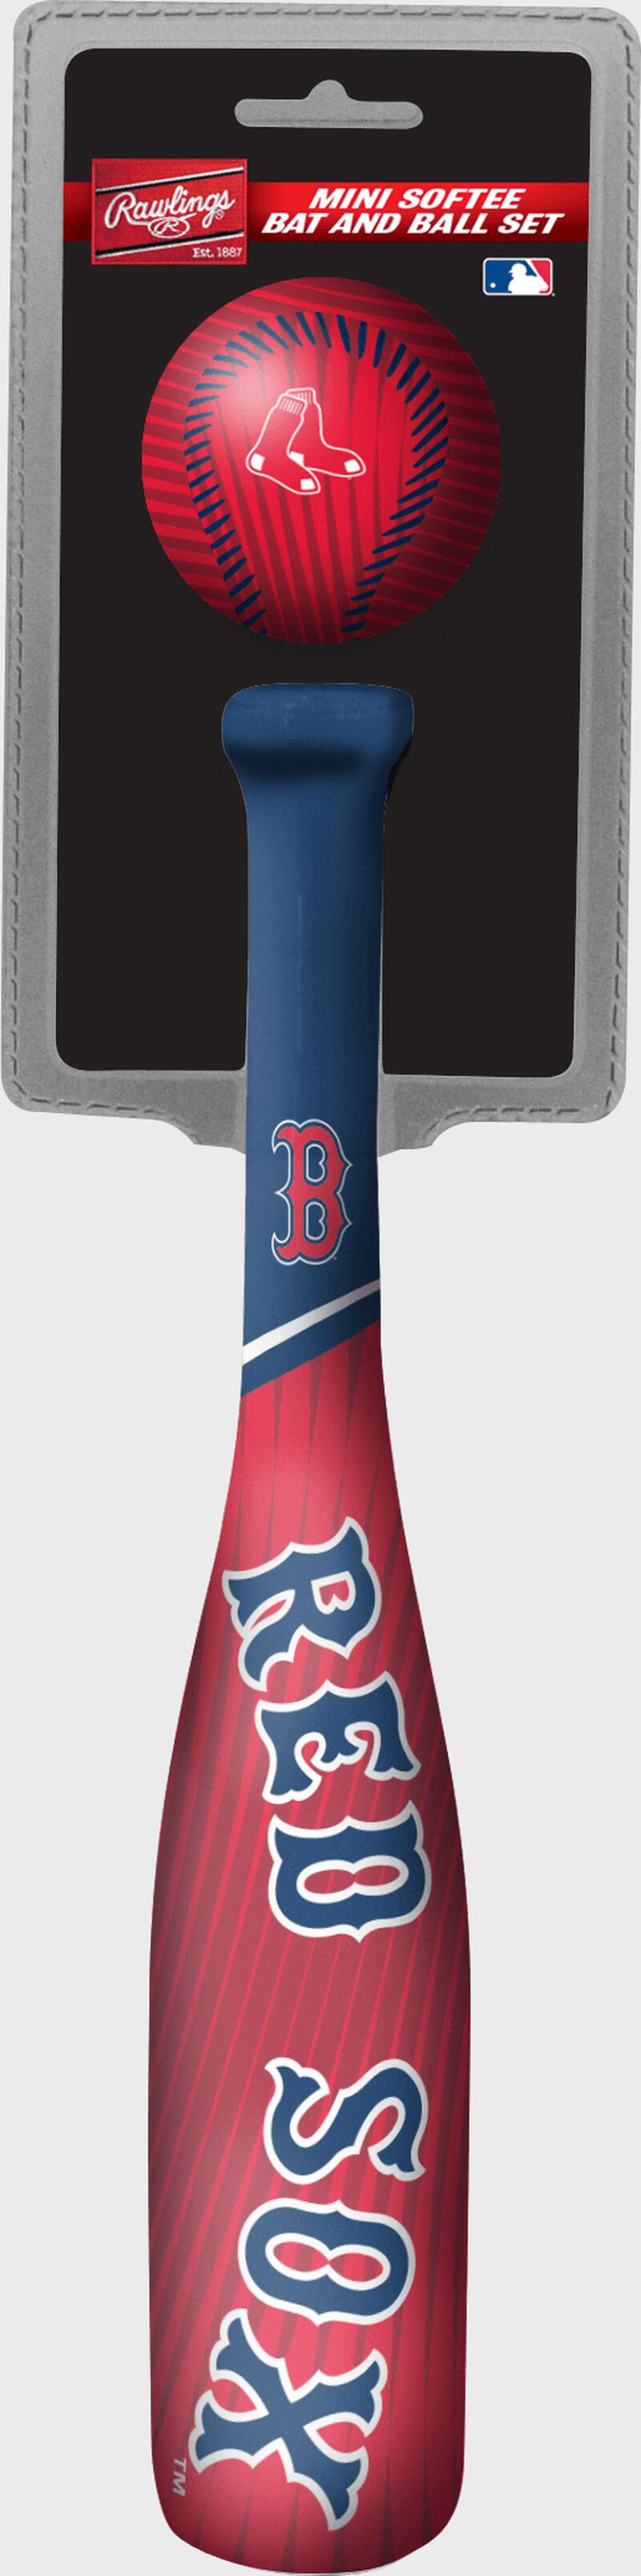 Rawlings Boston Red Sox Softee Mini Bat and Ball Set in Team Colors With Team Name and Logo On Front SKU #01160024114